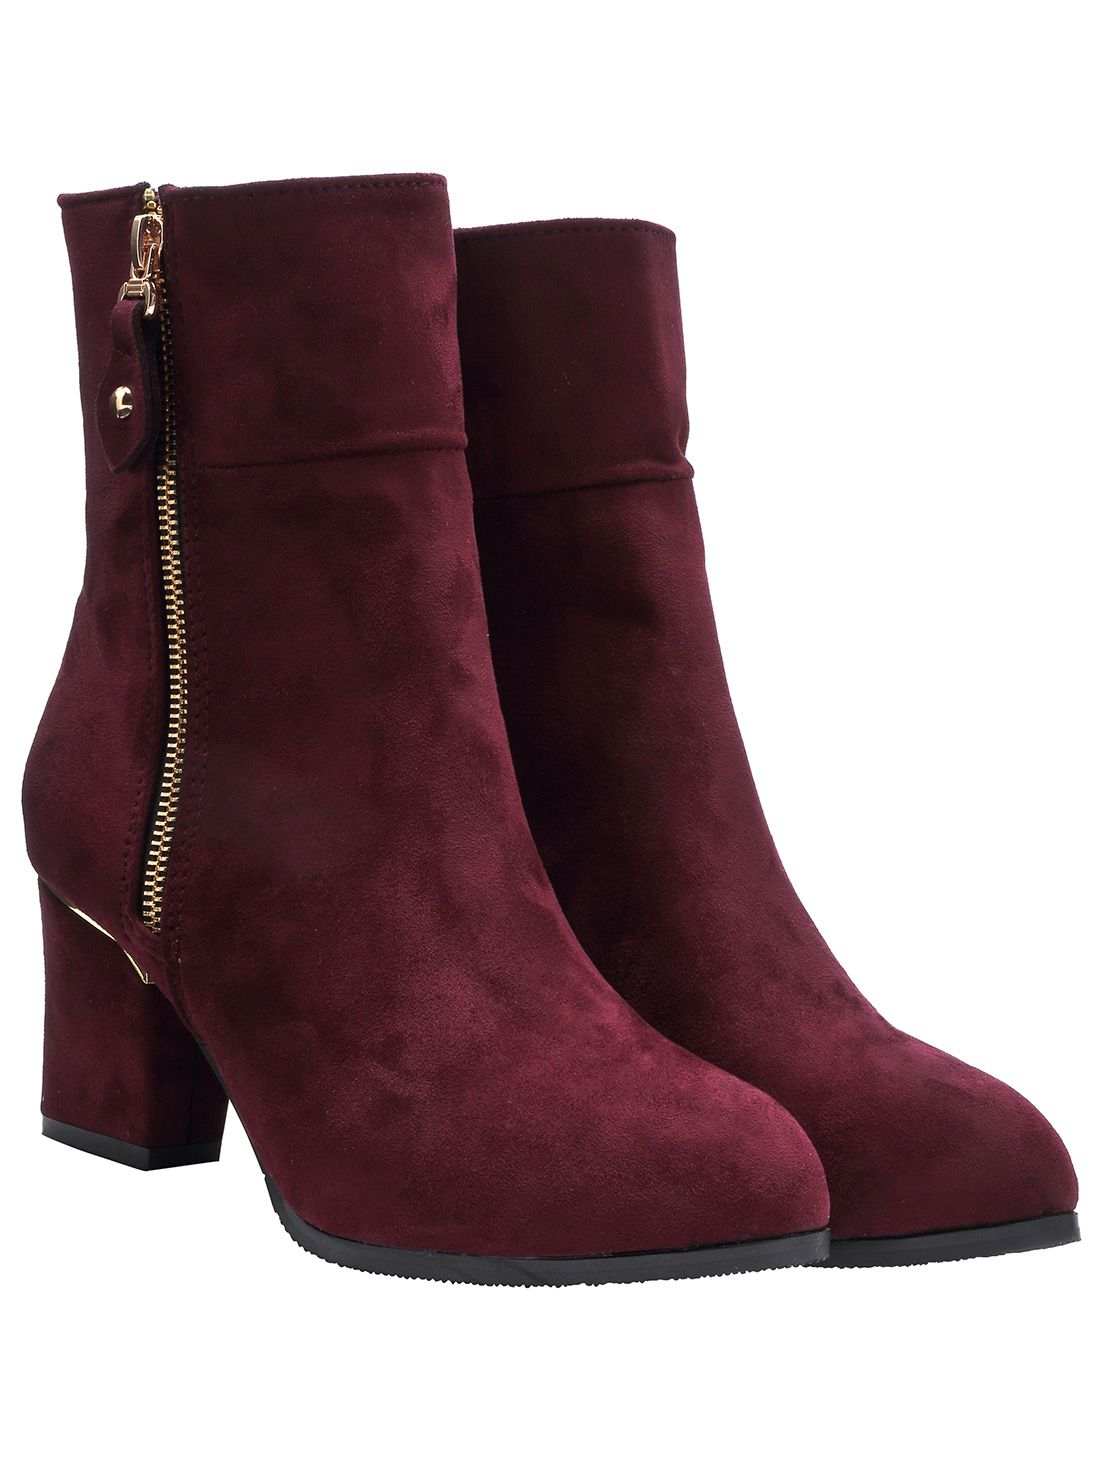 Shop Wine Red Chunky Heel Suede Mid-calf Boots online. SheIn offers Wine Red Chunky Heel Suede Mid-calf Boots & more to fit your fashionable needs.